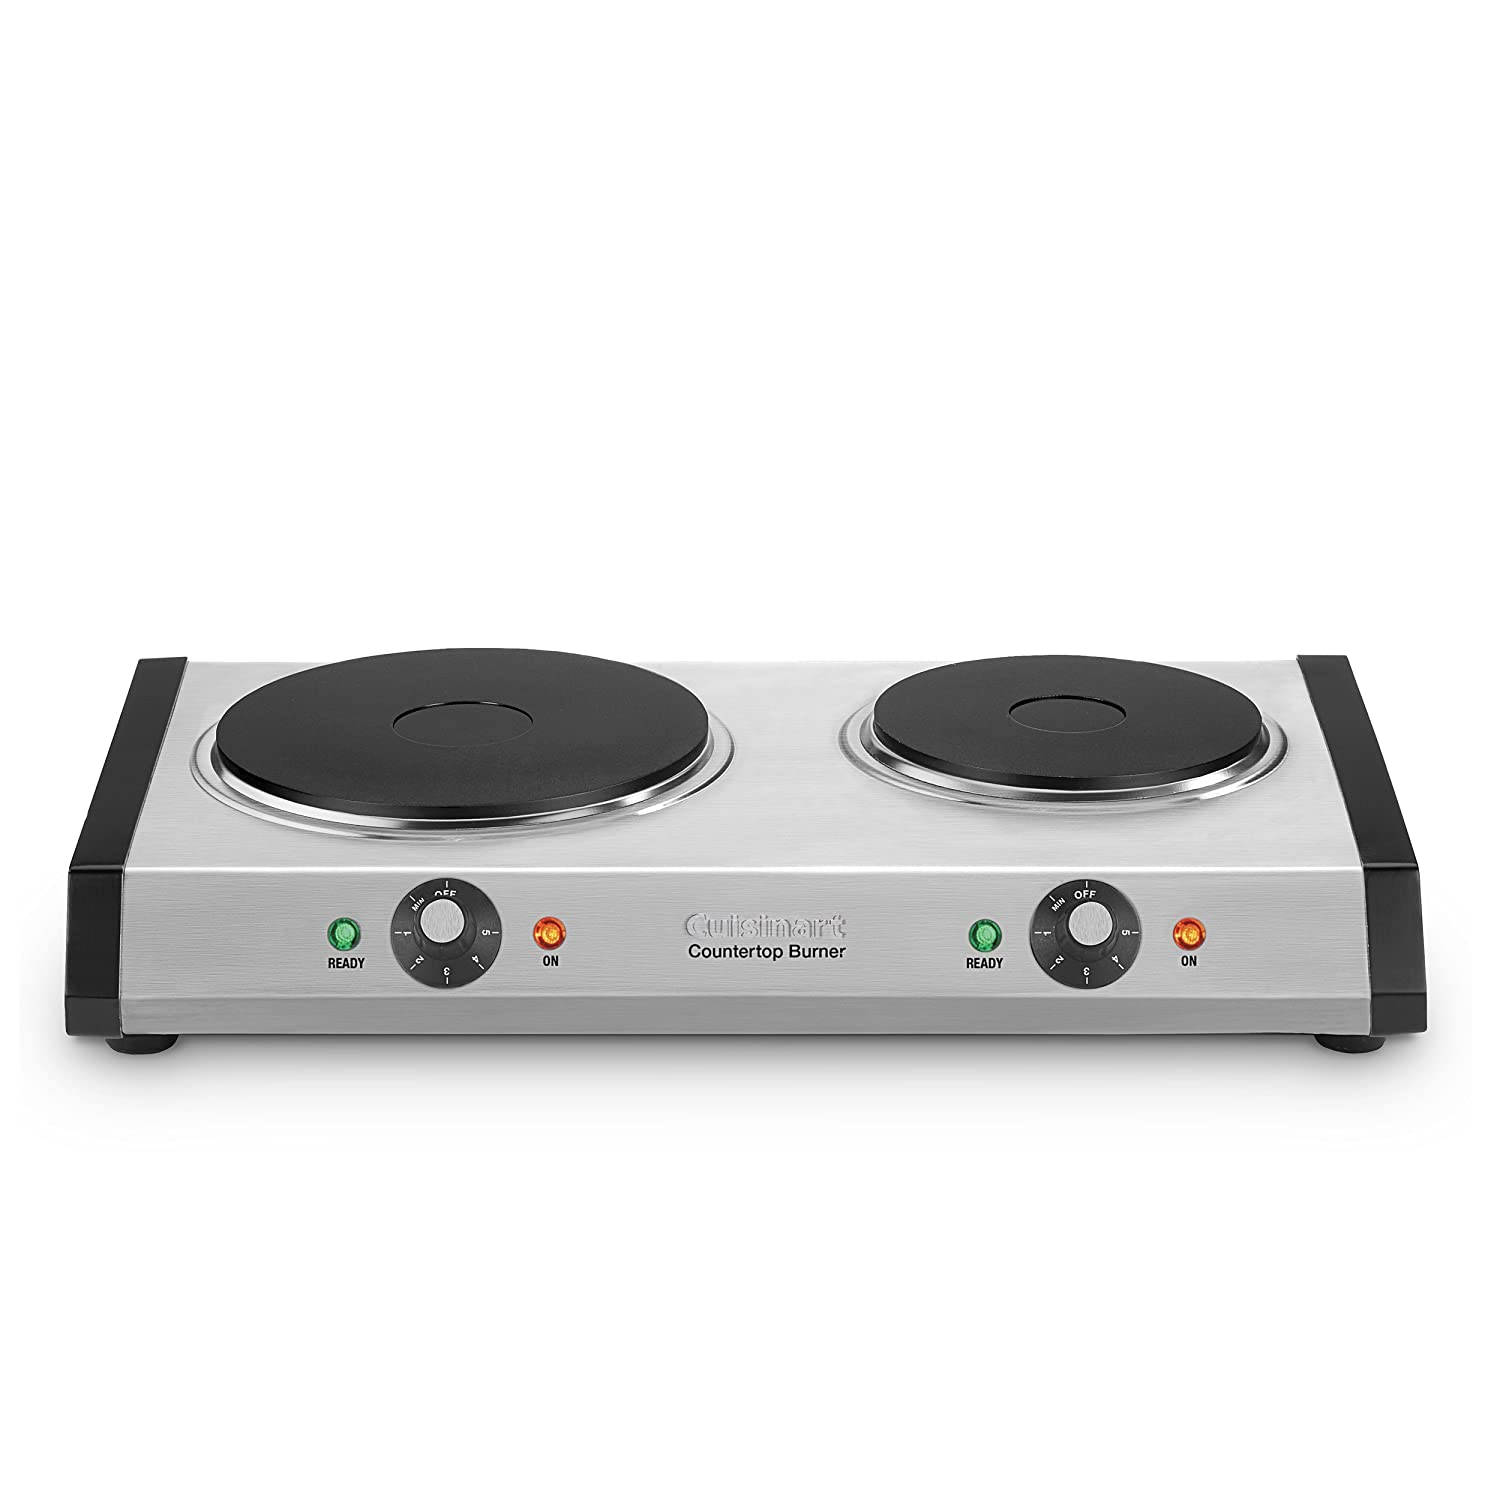 Best Countertop Burner Reviews in 2019 10